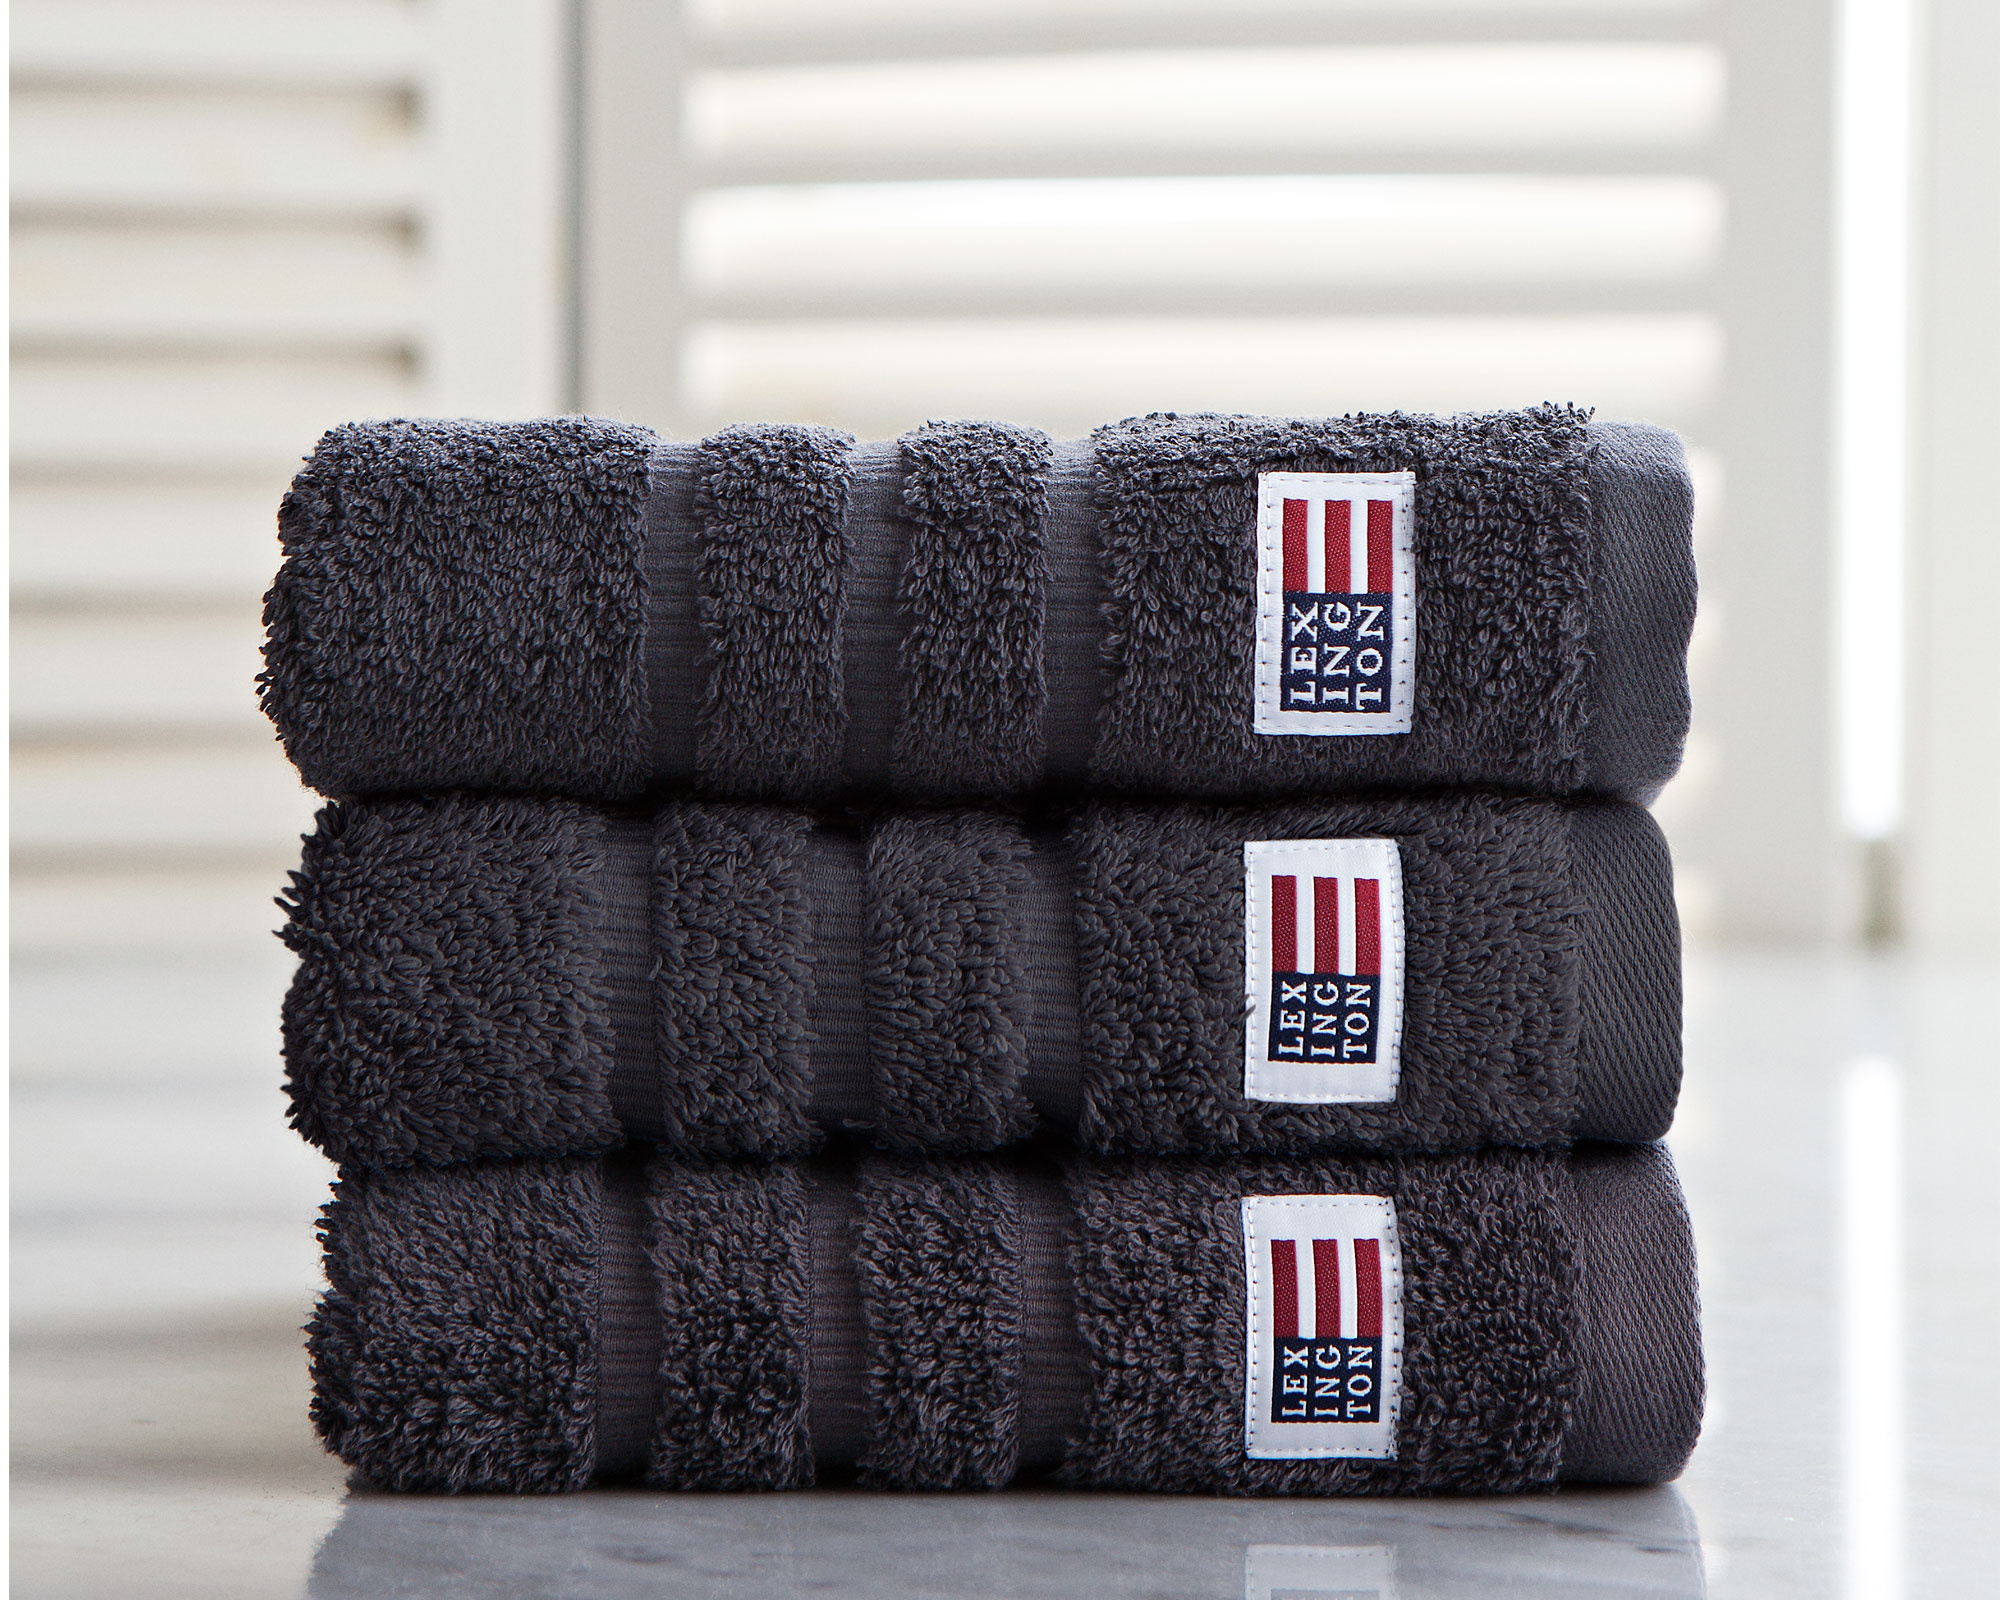 Original Hand Towel Charcoal